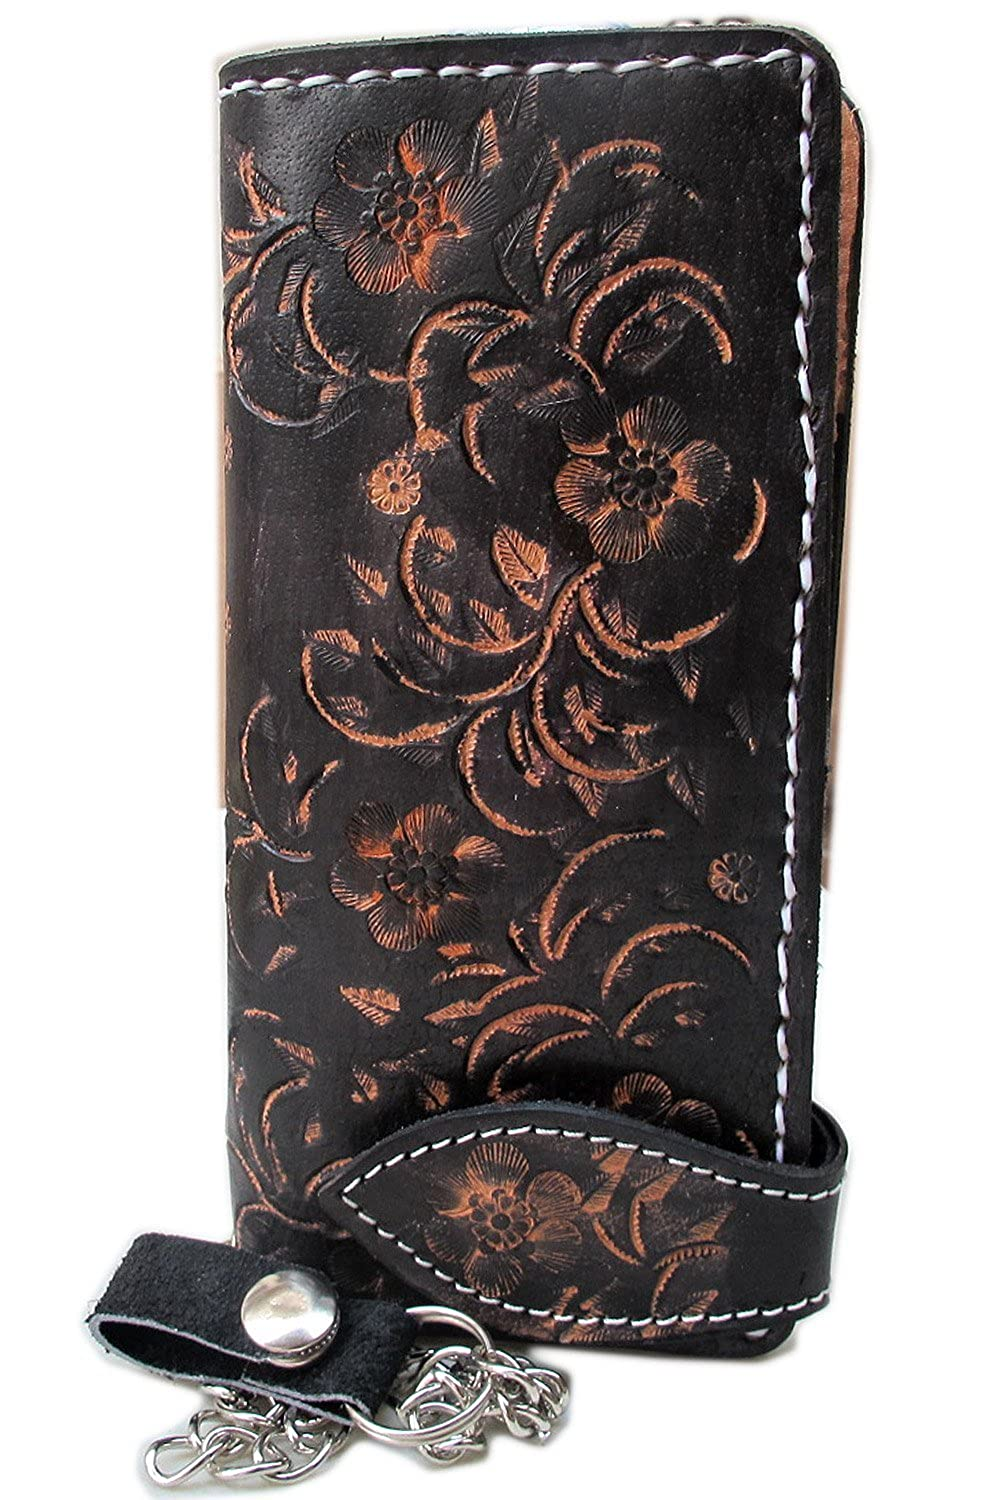 CLASSIC FLORA BIKER / TRUCKER CLUTCH WALLET WITH SAFETY CHAIN GENUINE COW LEATHER